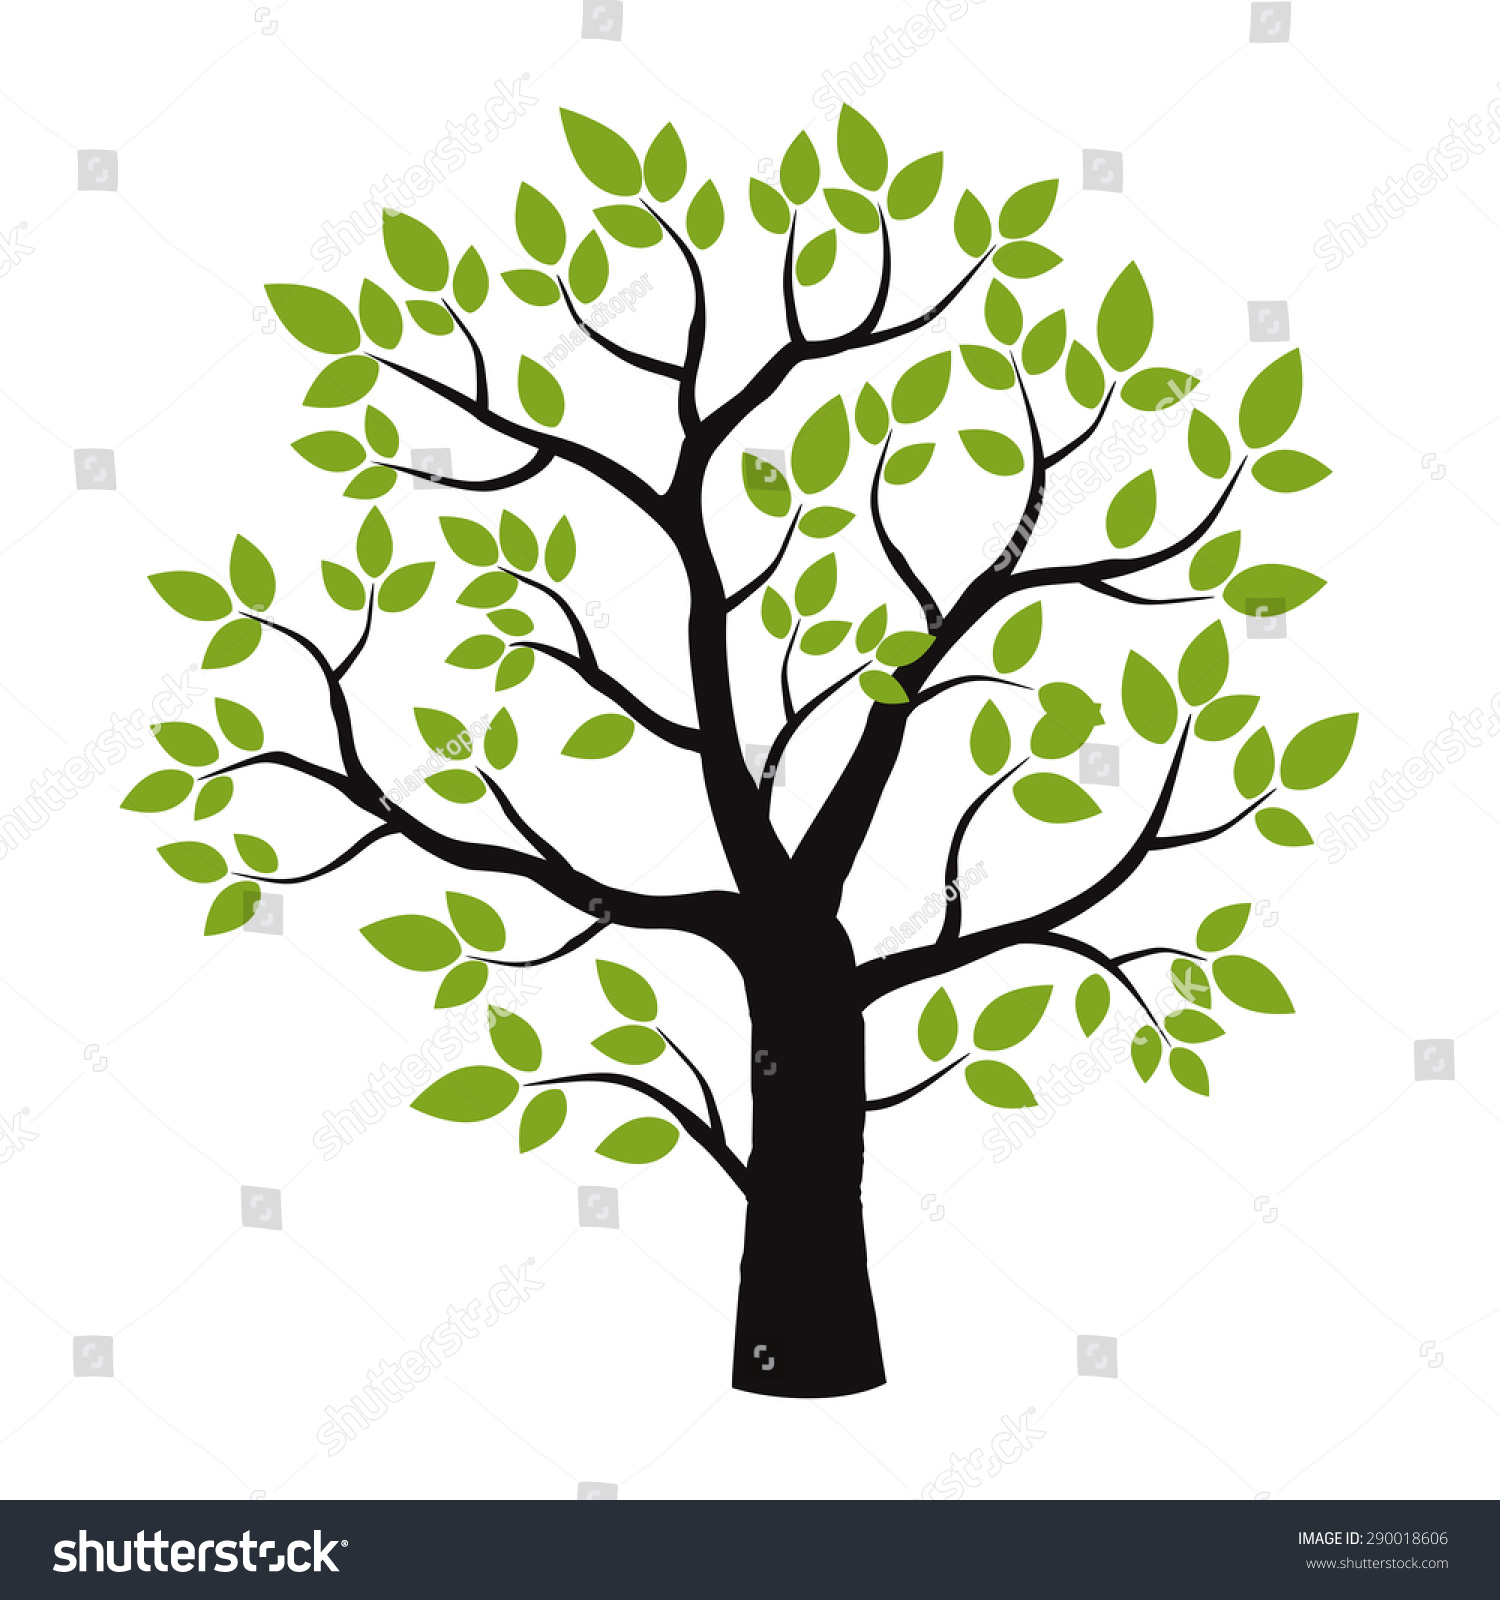 Color Tree Vector Illustration Stock Vector HD (Royalty Free ...